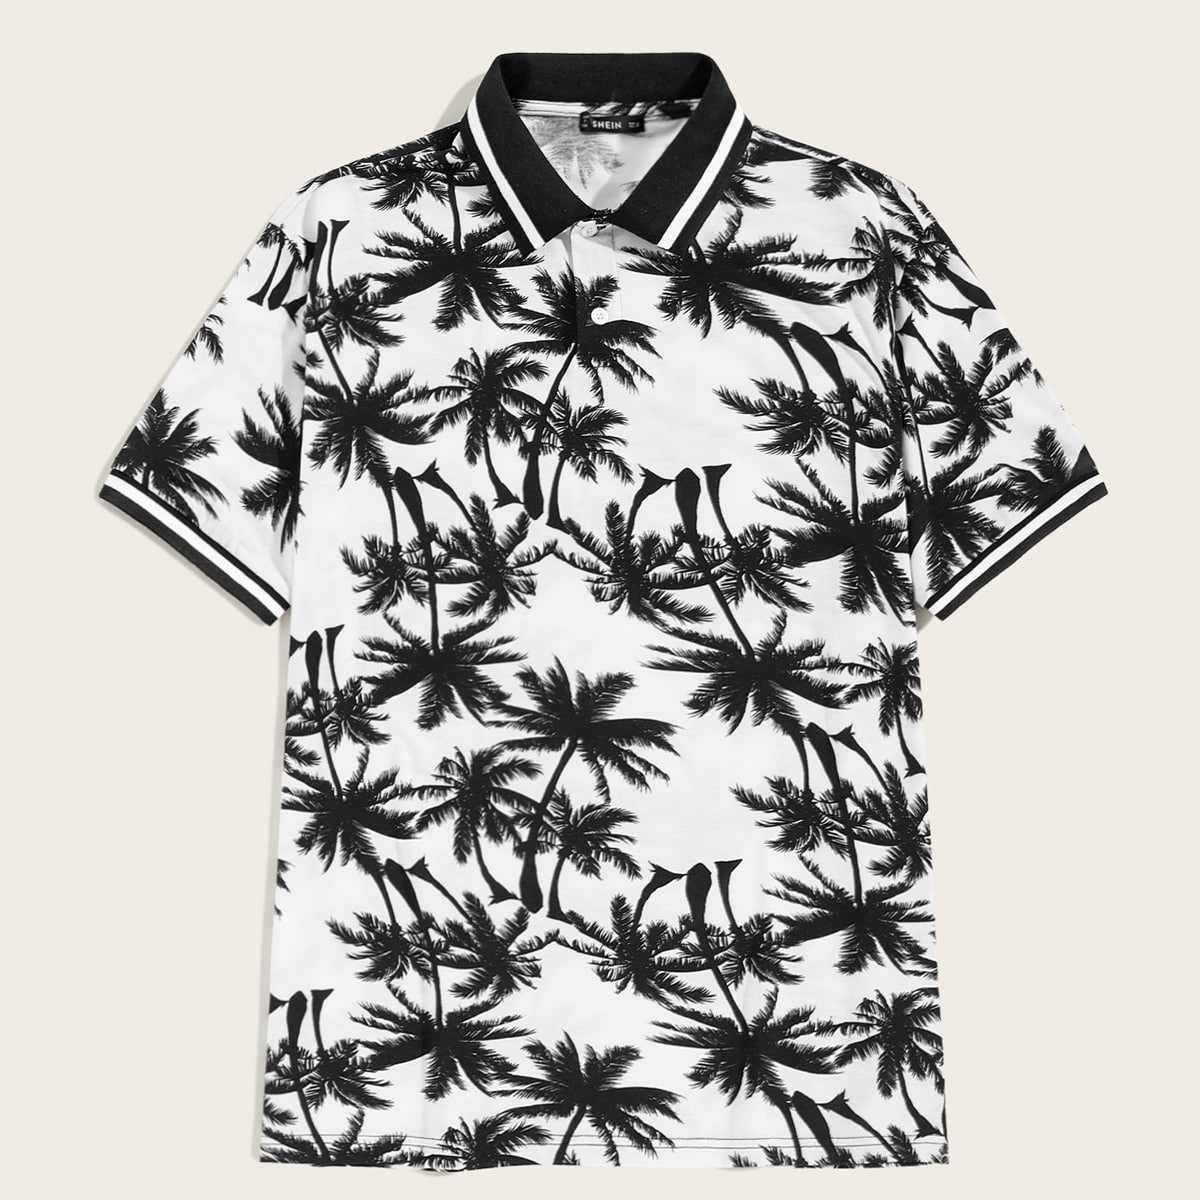 Guys Coconut Tree Print Half Placket Polo Shirt in Black and White by ROMWE on GOOFASH